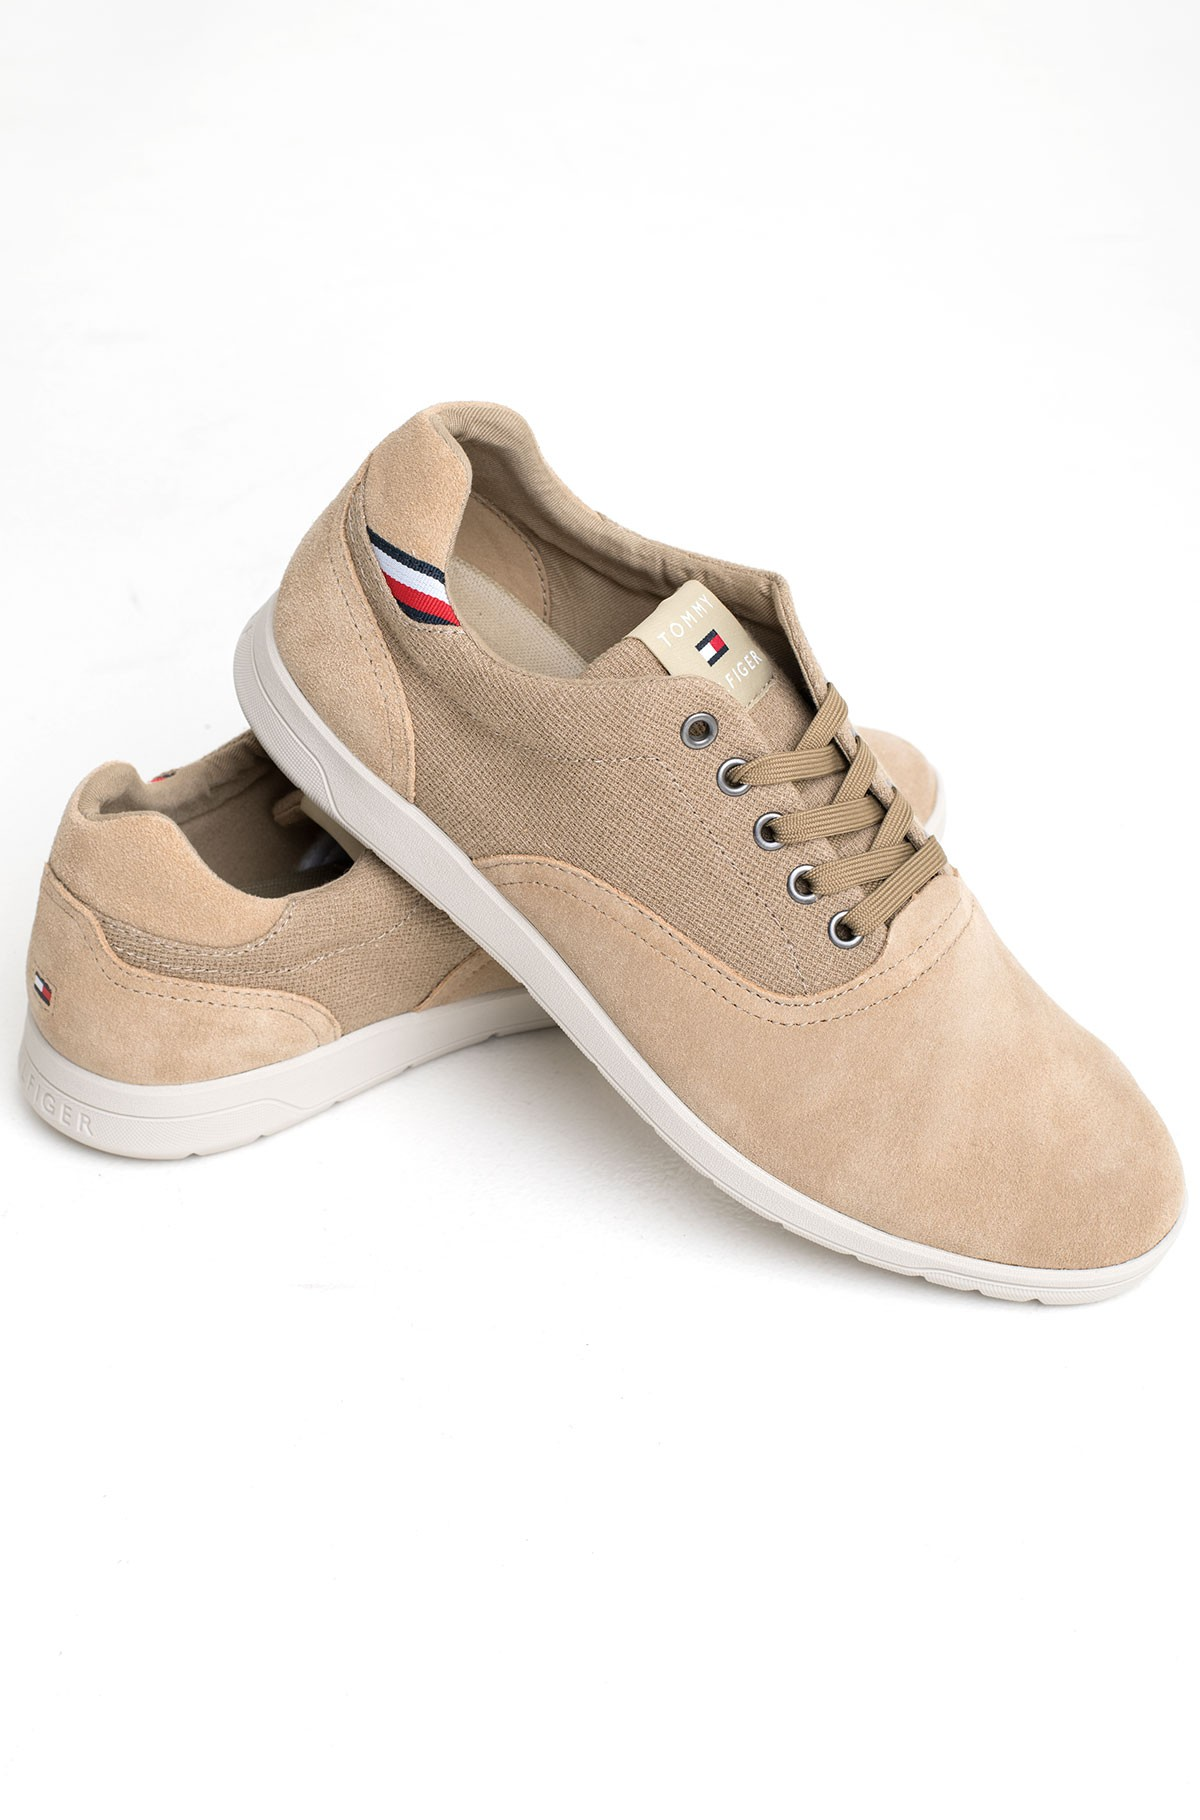 Casual shoes MIX OF MATERIALS HYBRID SHOE-full-3